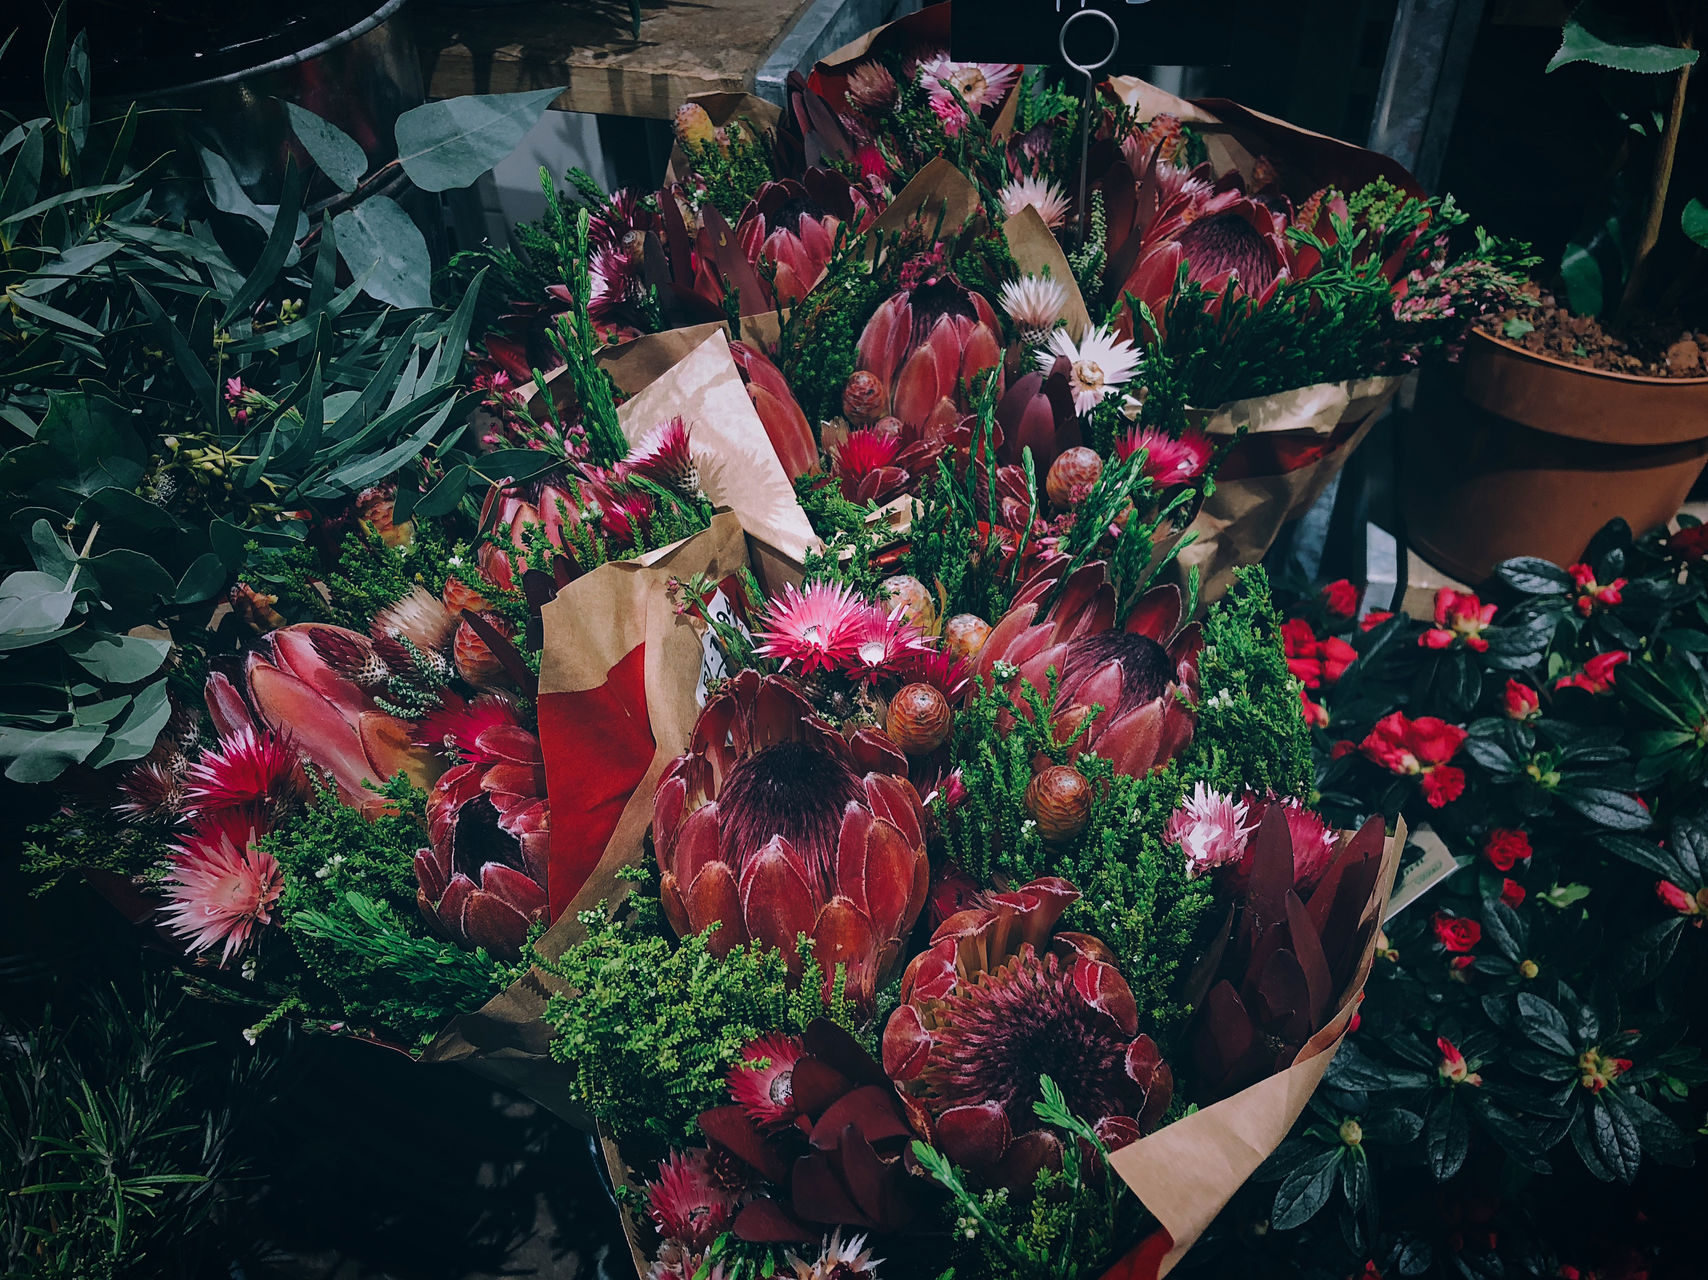 Life Nature Plant beauty in Nature bouquet close-up colorful flower flower head Flower Market flower shop fragility Freshness gift Growth high angle view lifestyles multi colored petal Red rose - flower spring spring flowers springtime variation